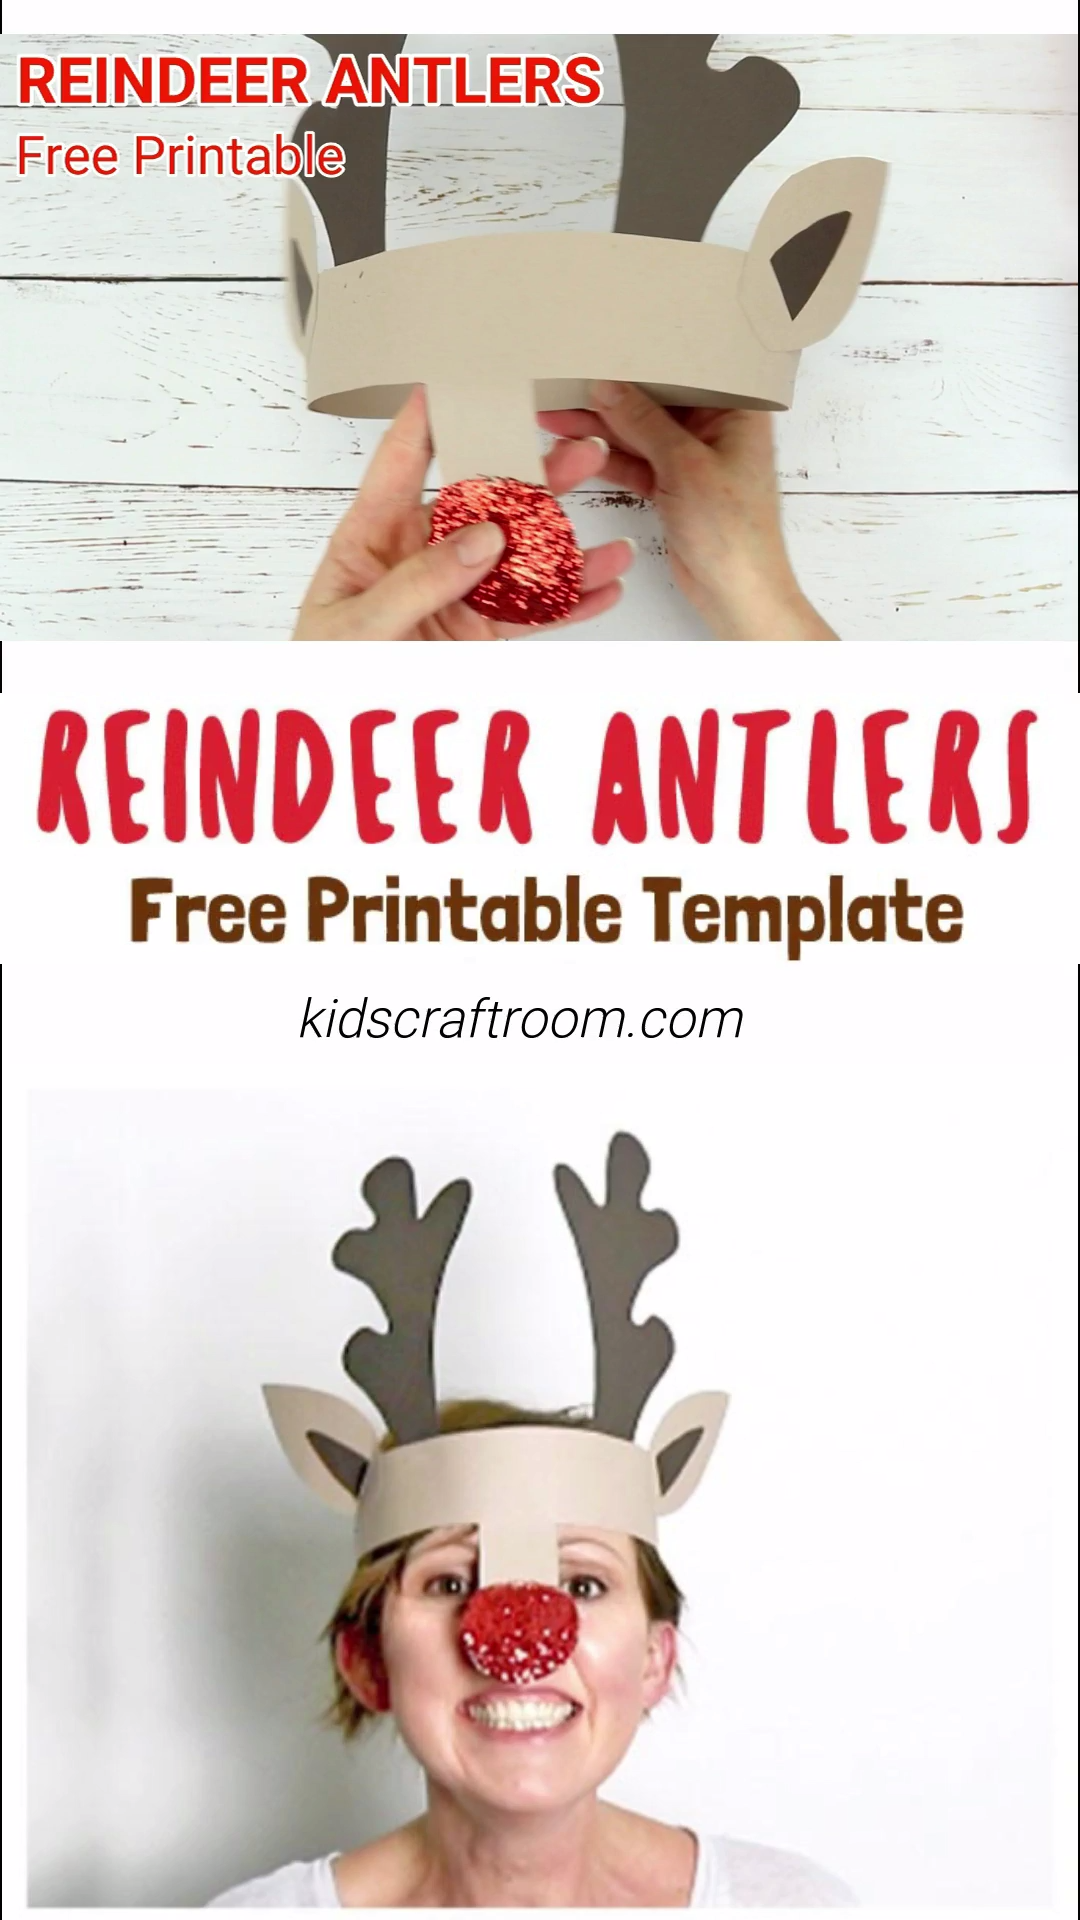 PRINTABLE REINDEER ANTLERS HAT - Make your own cute Reindeer Antlers headband. This kids Christmas craft is so fun! Print the free template onto plain card to paint or trace it straight onto coloured card. An easy and adorable kids craft for the Christmas holidays.  #kidscraftroom #christmascrafts #reindeercrafts #reindeer #rudolf #christmasforkids #christmashats #reindeerhat #antlers #rudolfcrafts #christmascraftsforkids  #printablecrafts #christmasideas #freeprintables #printables